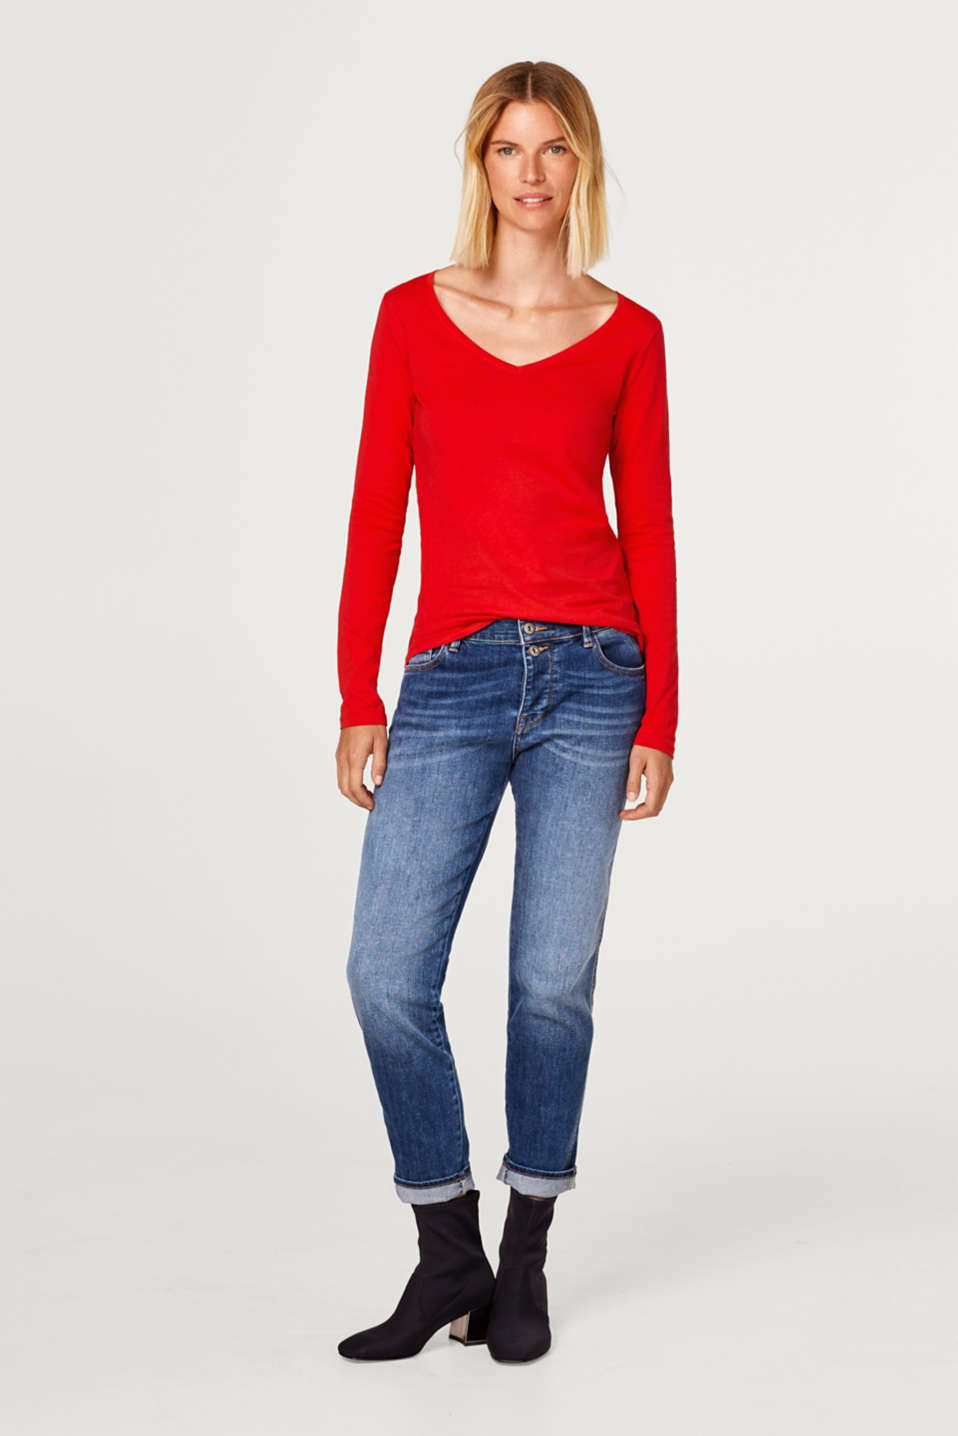 V-neckline long sleeve top with organic cotton